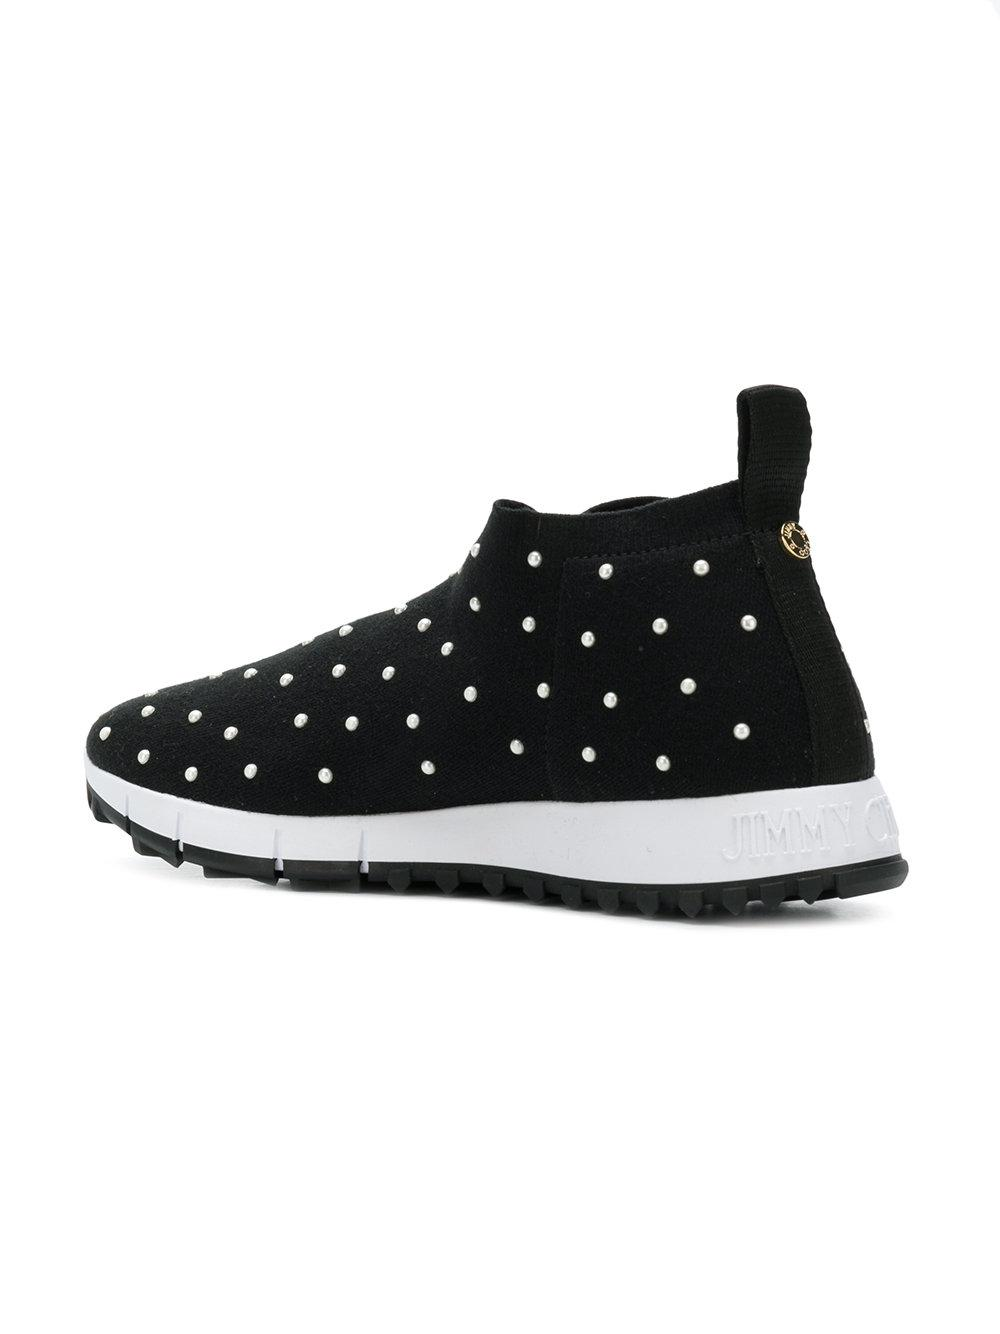 outlet in China sale purchase Jimmy Choo Norway pearl embellished sneakers find great for sale cheap sale largest supplier yRW3X9Xq